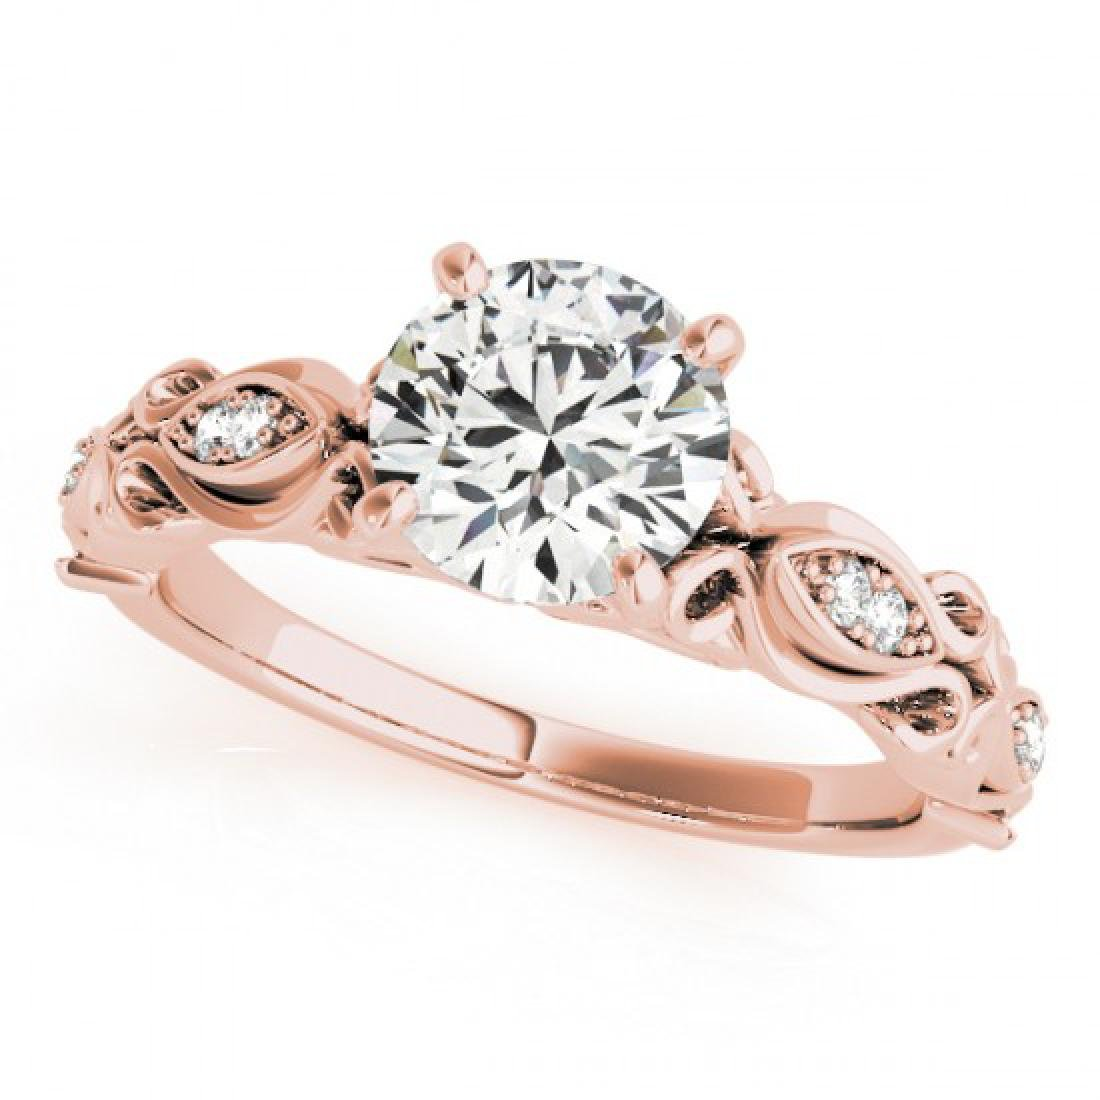 0.85 CTW Certified VS/SI Diamond Solitaire Antique Ring